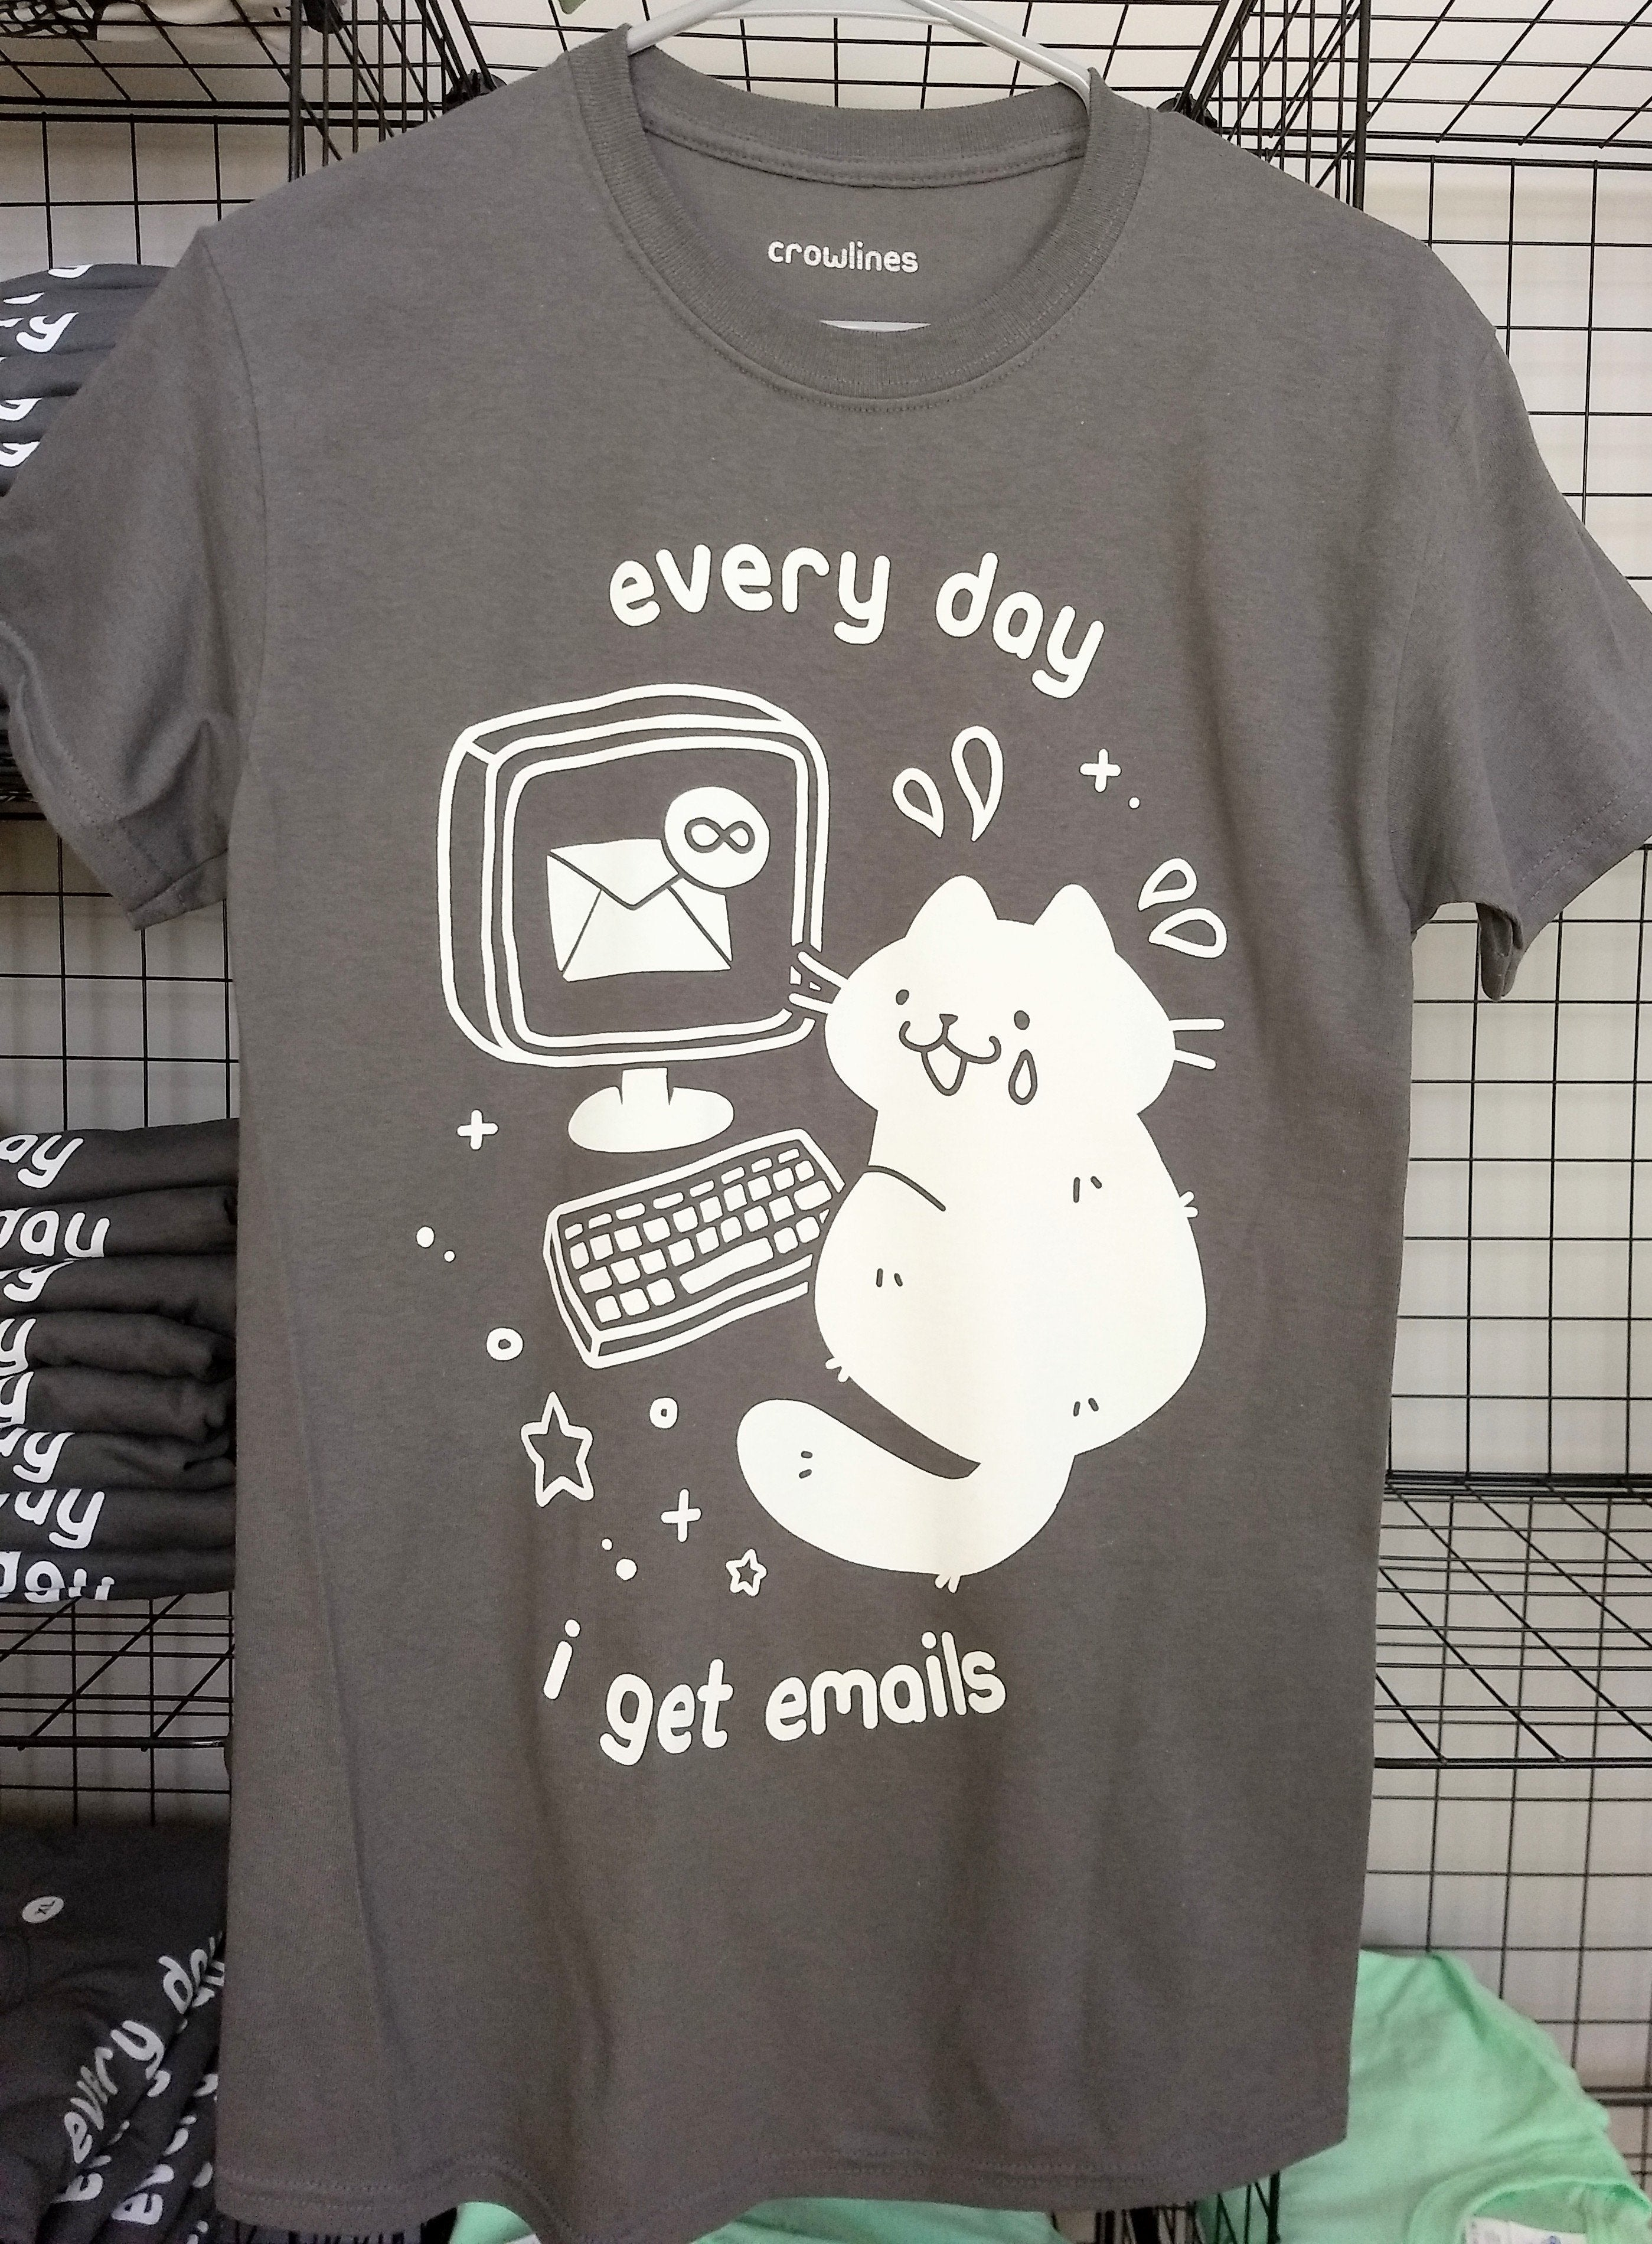 gray short sleeve tee with a white graphic of a cat with a tear on its face in front of a laptop showing inbox infinity and the text